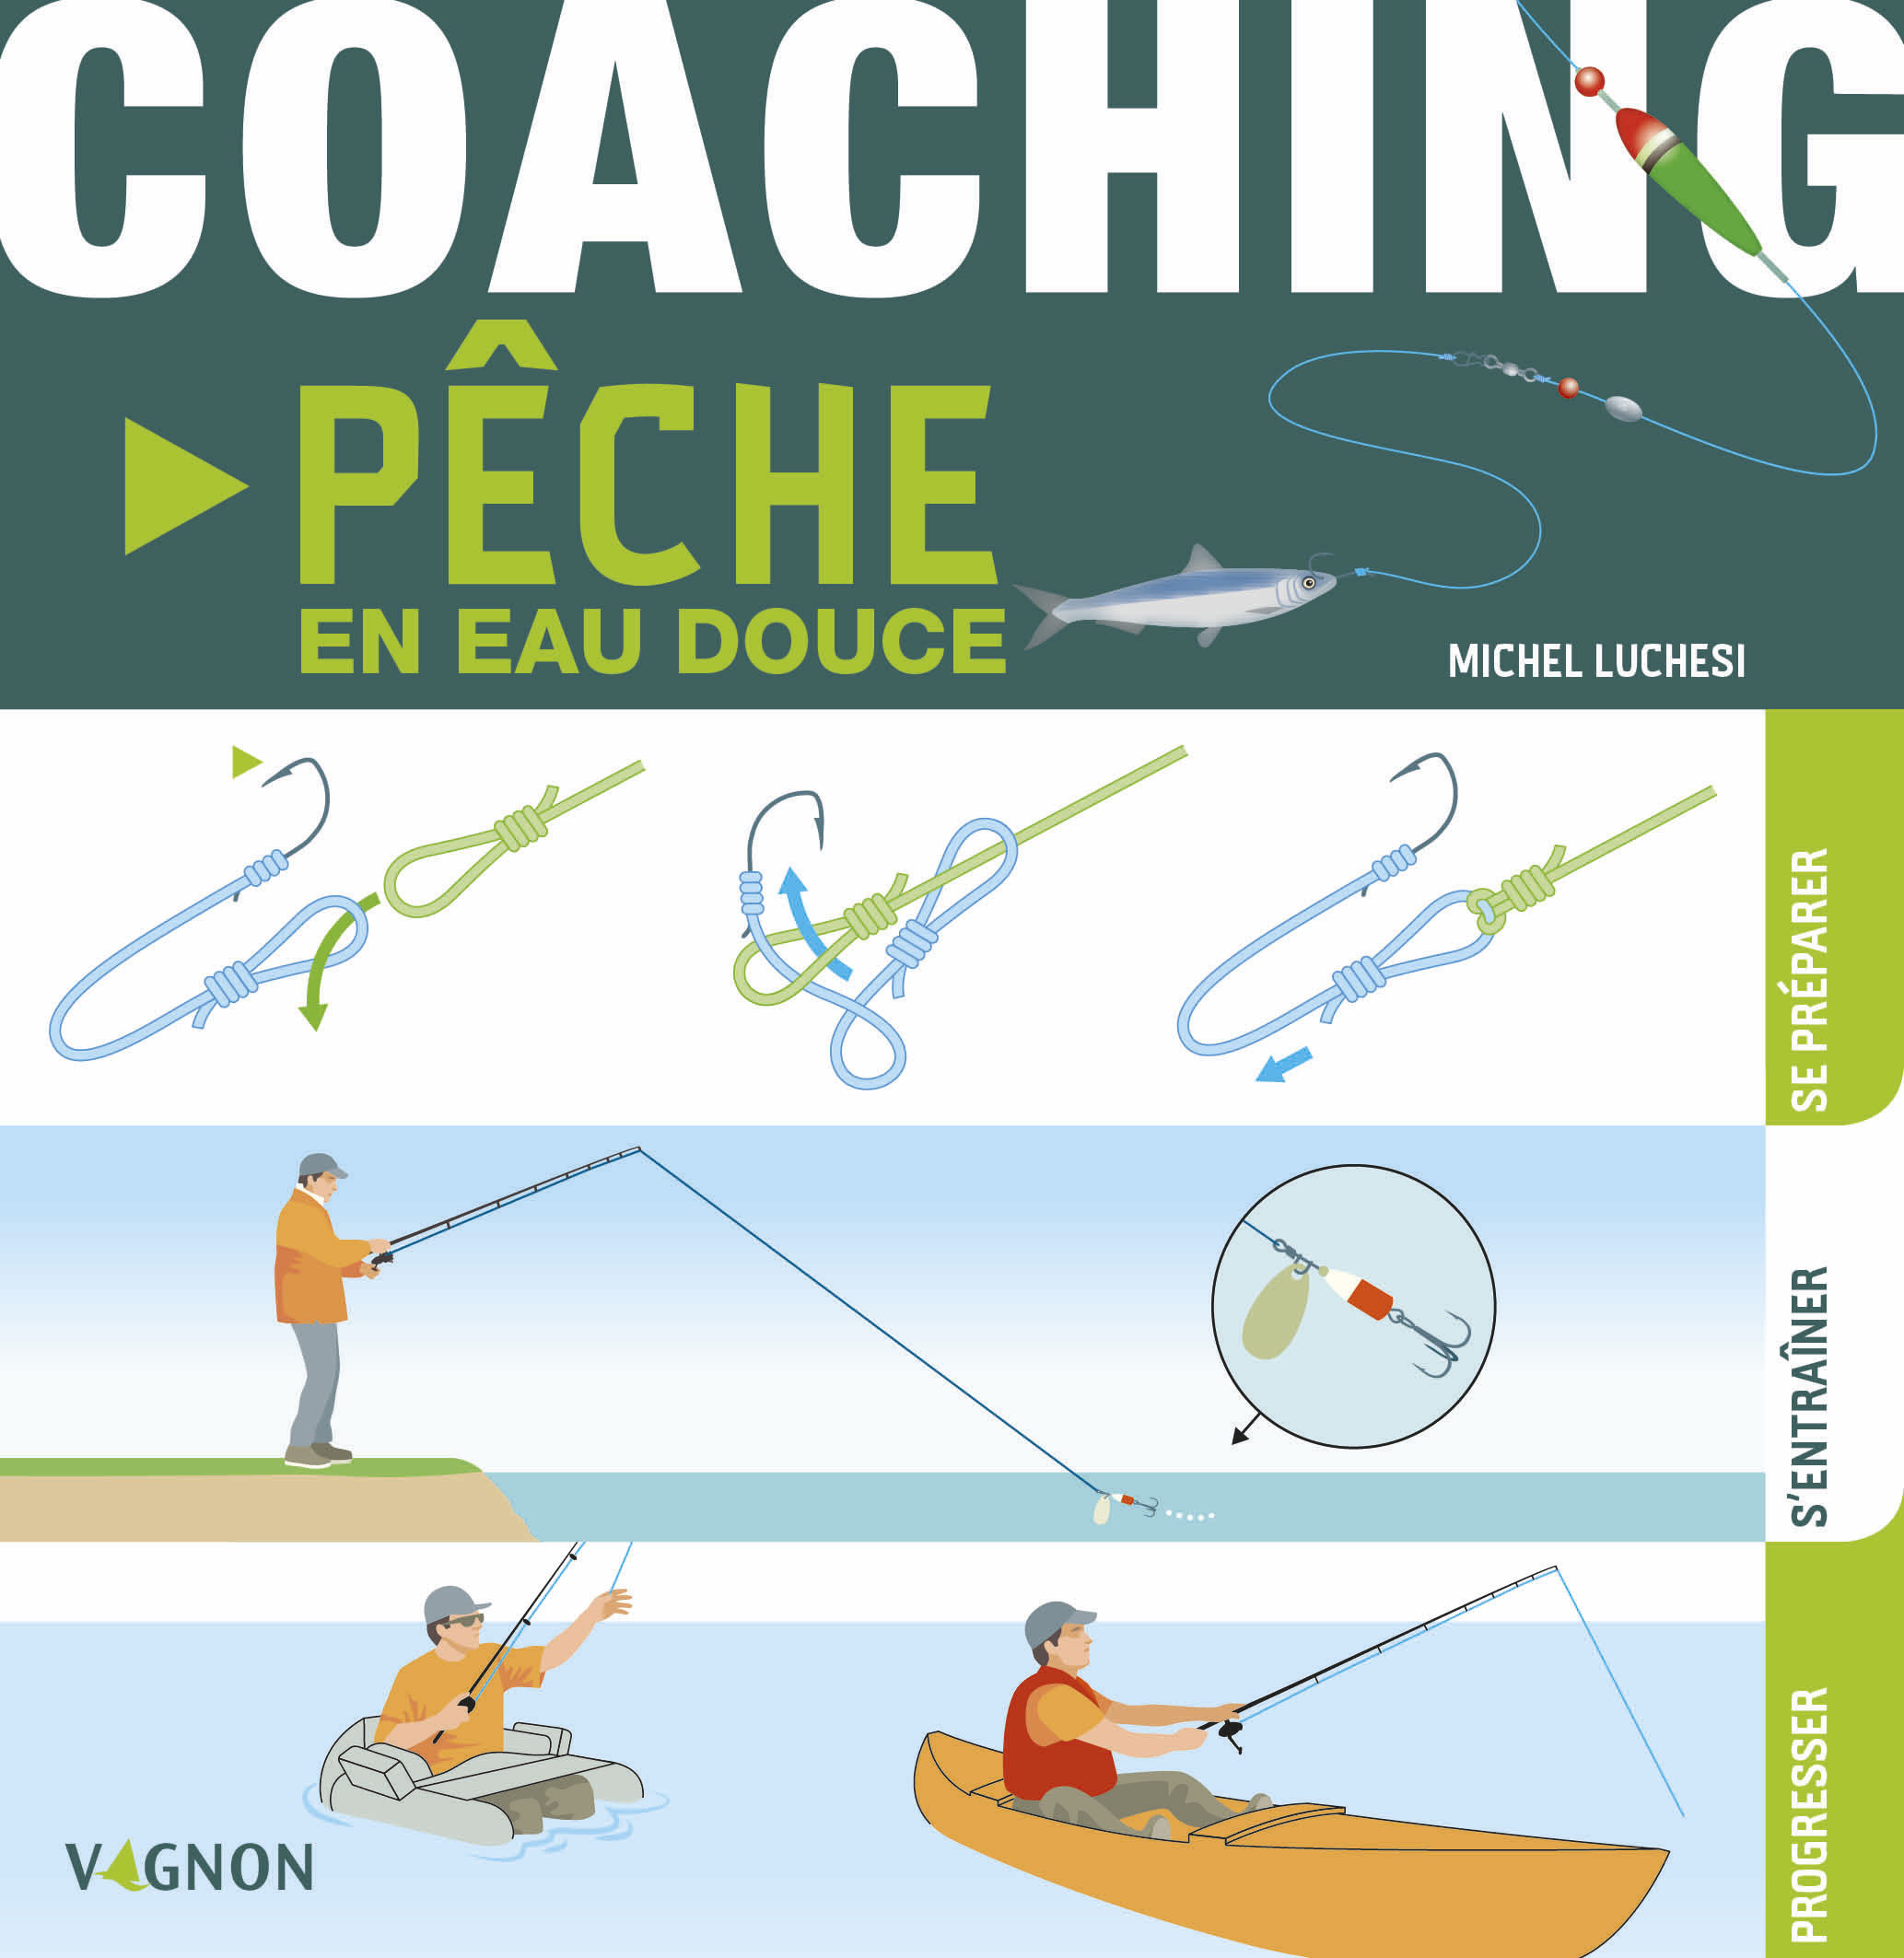 COACHING PECHE EN EAU DOUCE